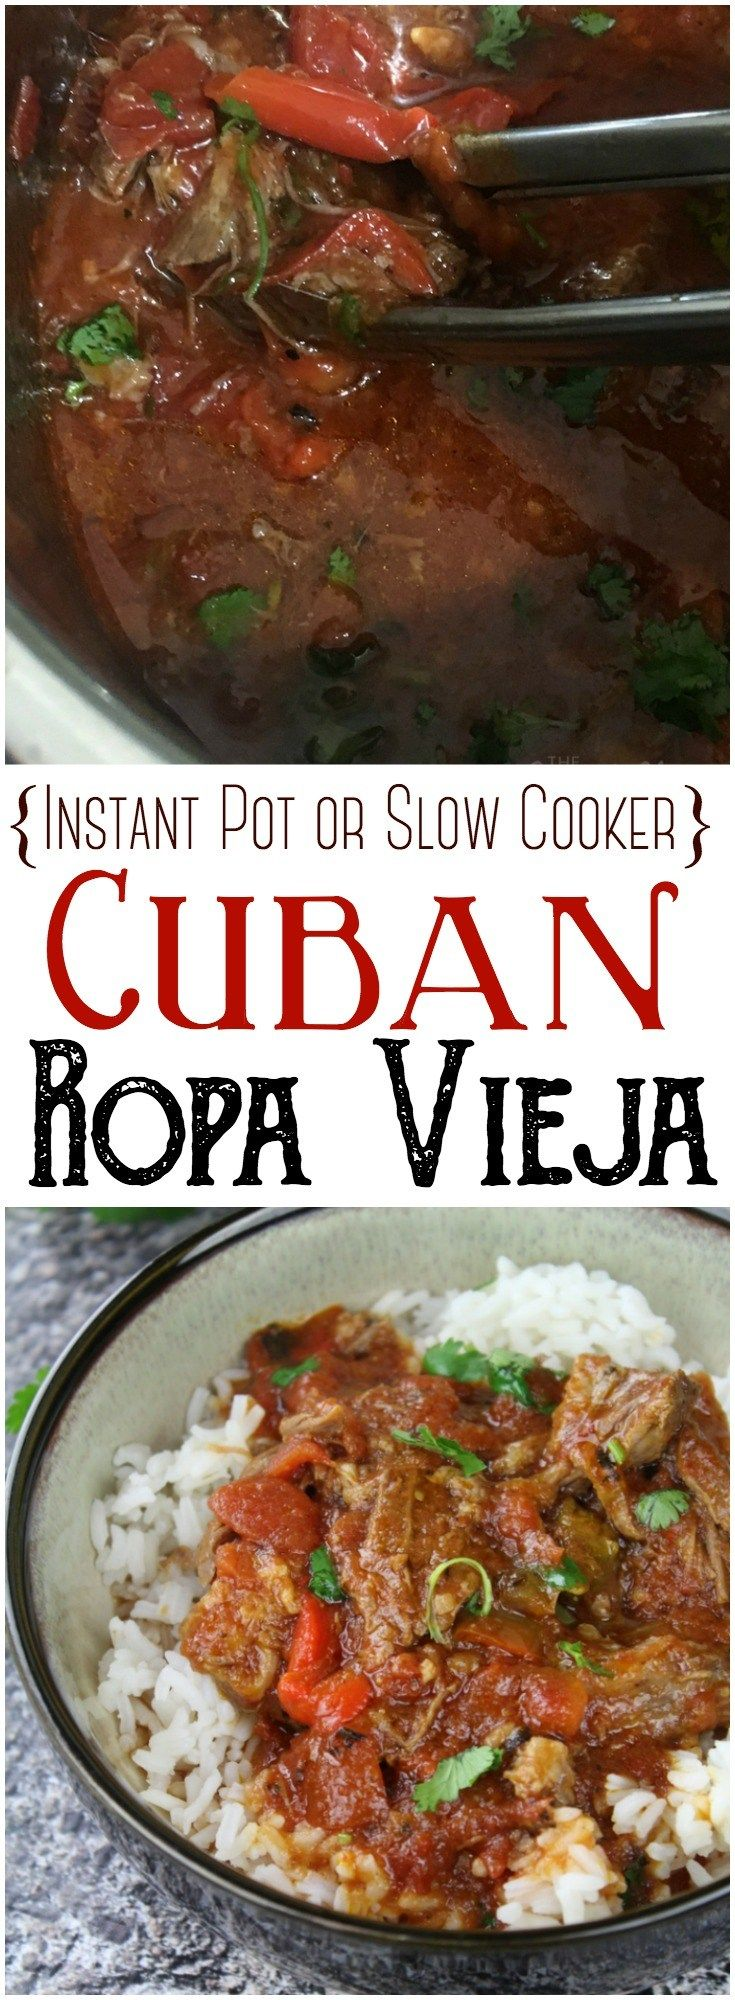 "Ropa Vieja (Instant Pot or Slow Cooker): This flavorful and rich Ropa Vieja cooks up easily in the Instant Pot. This Cuban specialty translates to ""old clothes"" in English, because the shreds of meat, peppers, cilantro and onions give the appearance of colorful rags. #InstantPot #PressureCooker #Cuban #beefrecipes #roast #slowcooker #crockpot"